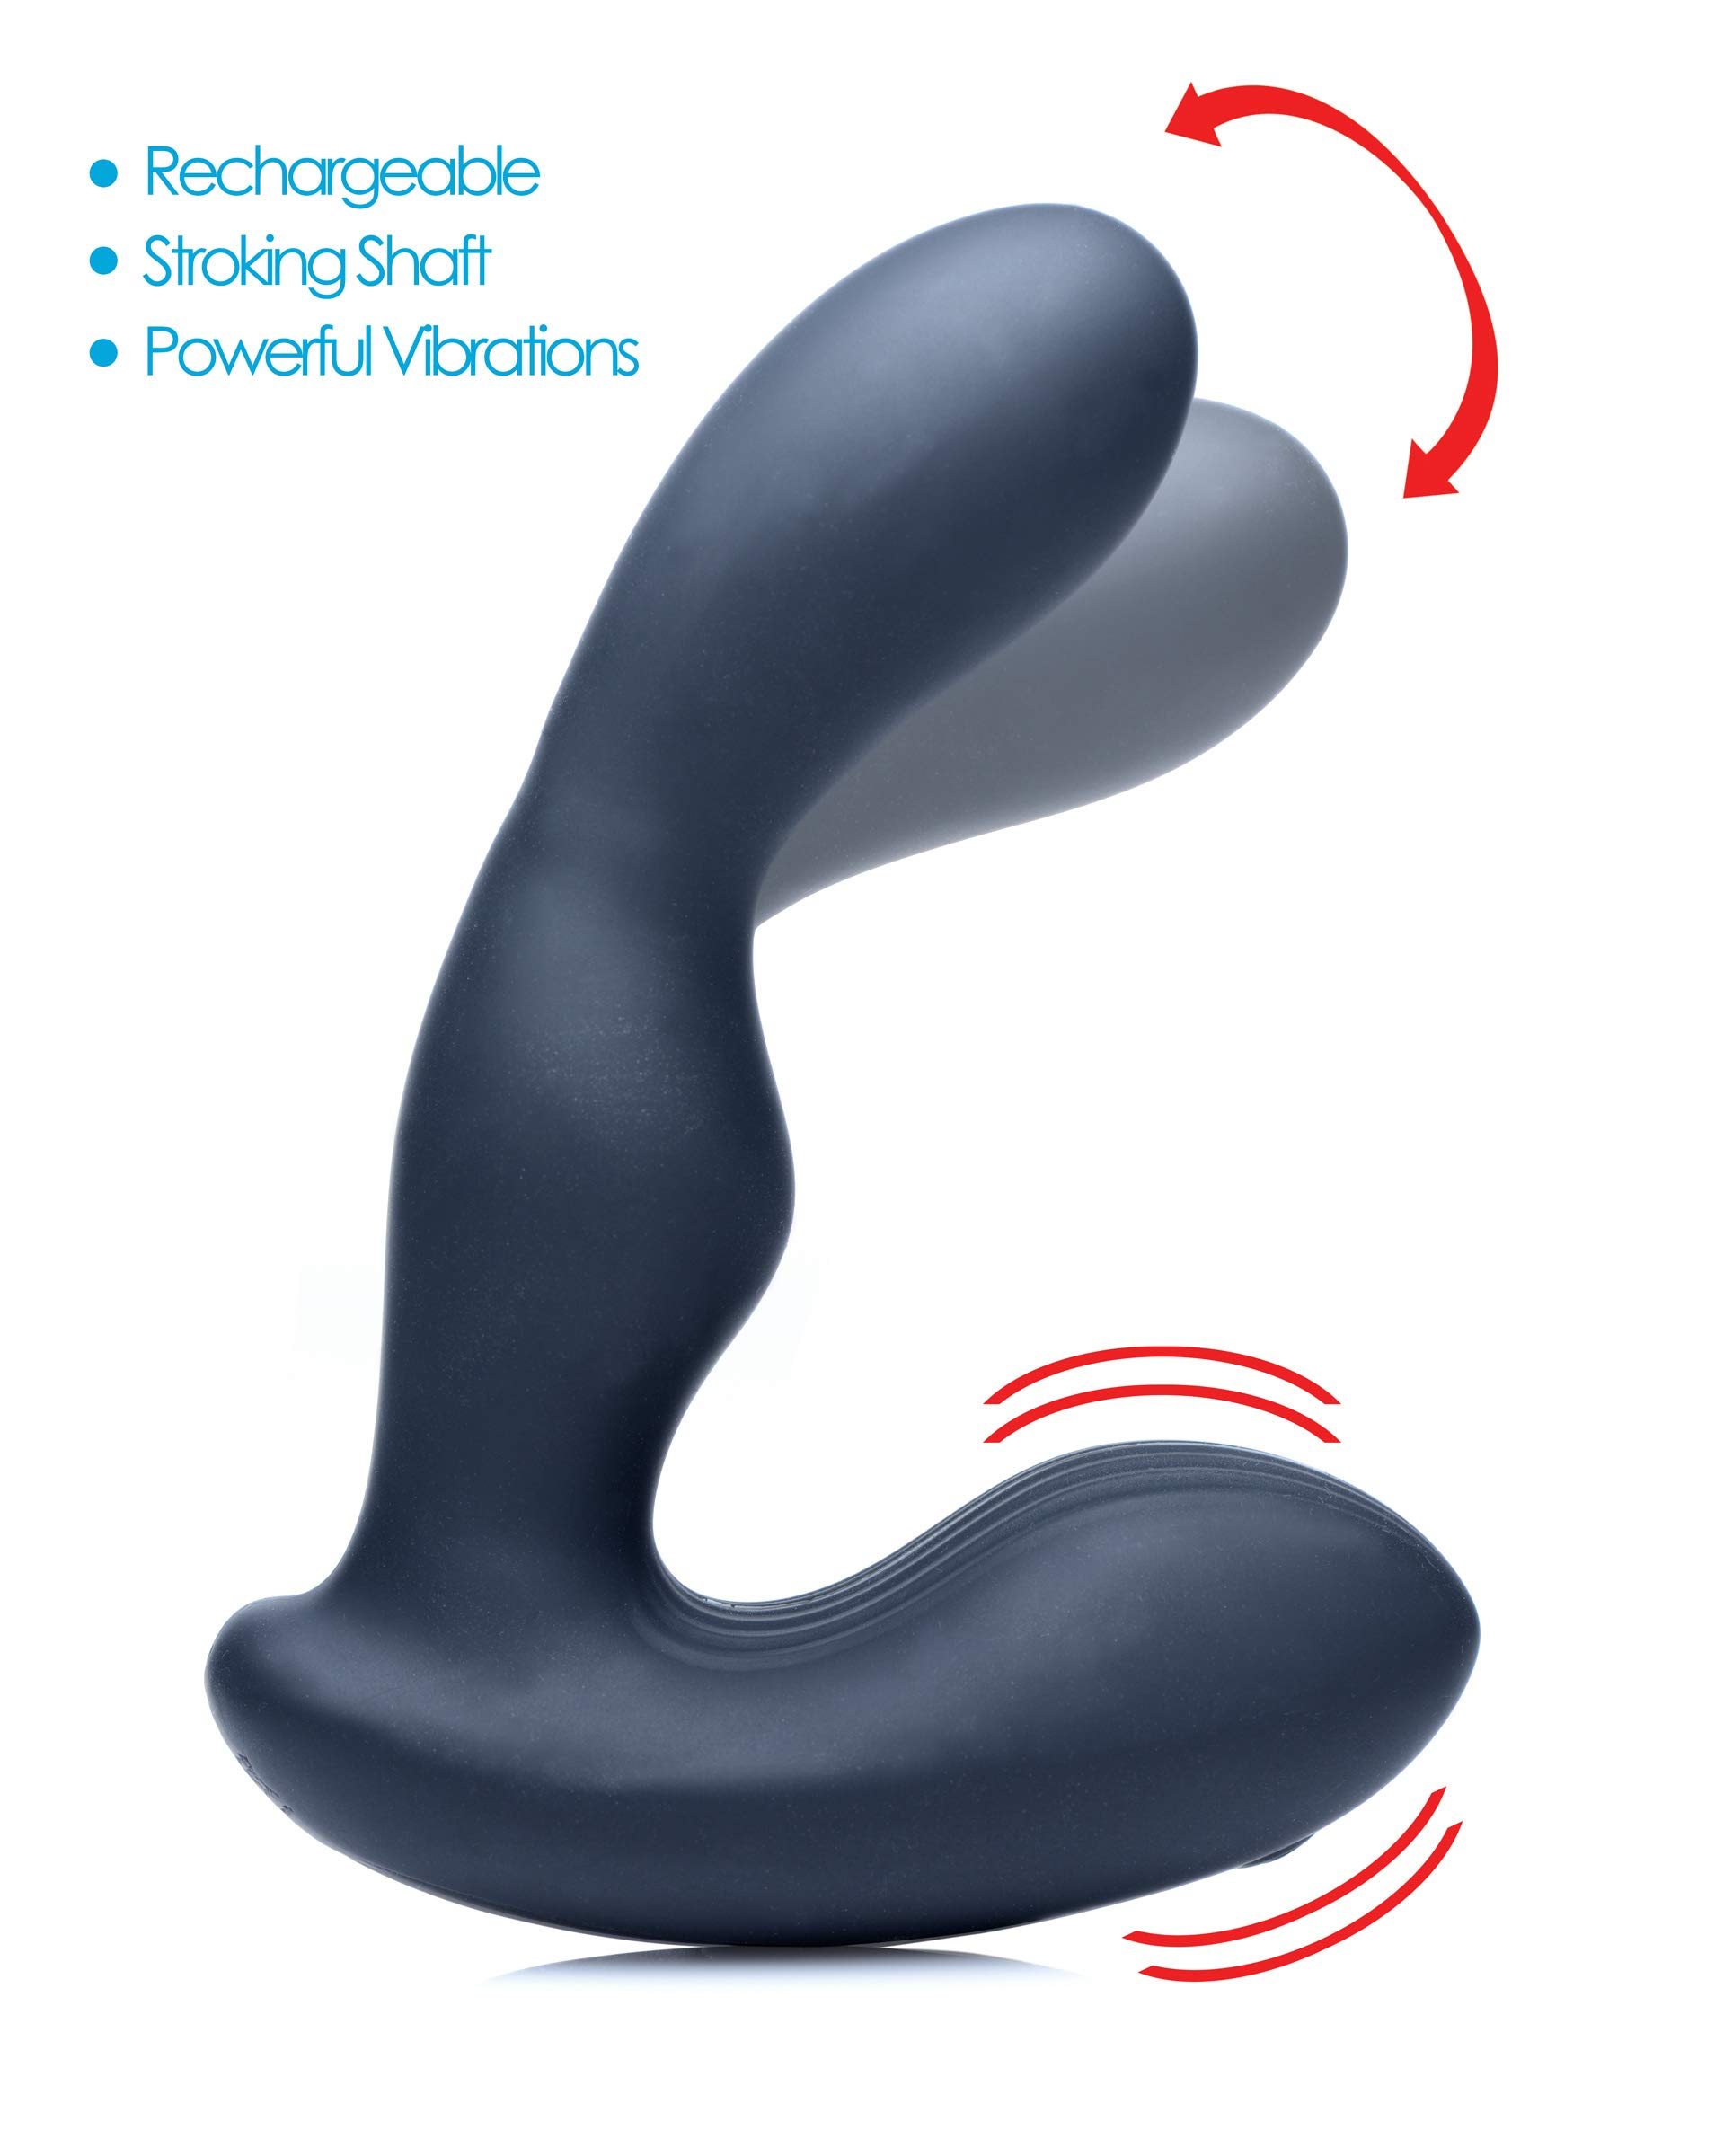 Alpha-Pro 7X P Stroke Silicone Prostate Stimulator with Stroking Shaft, Black by Alpha-Pro